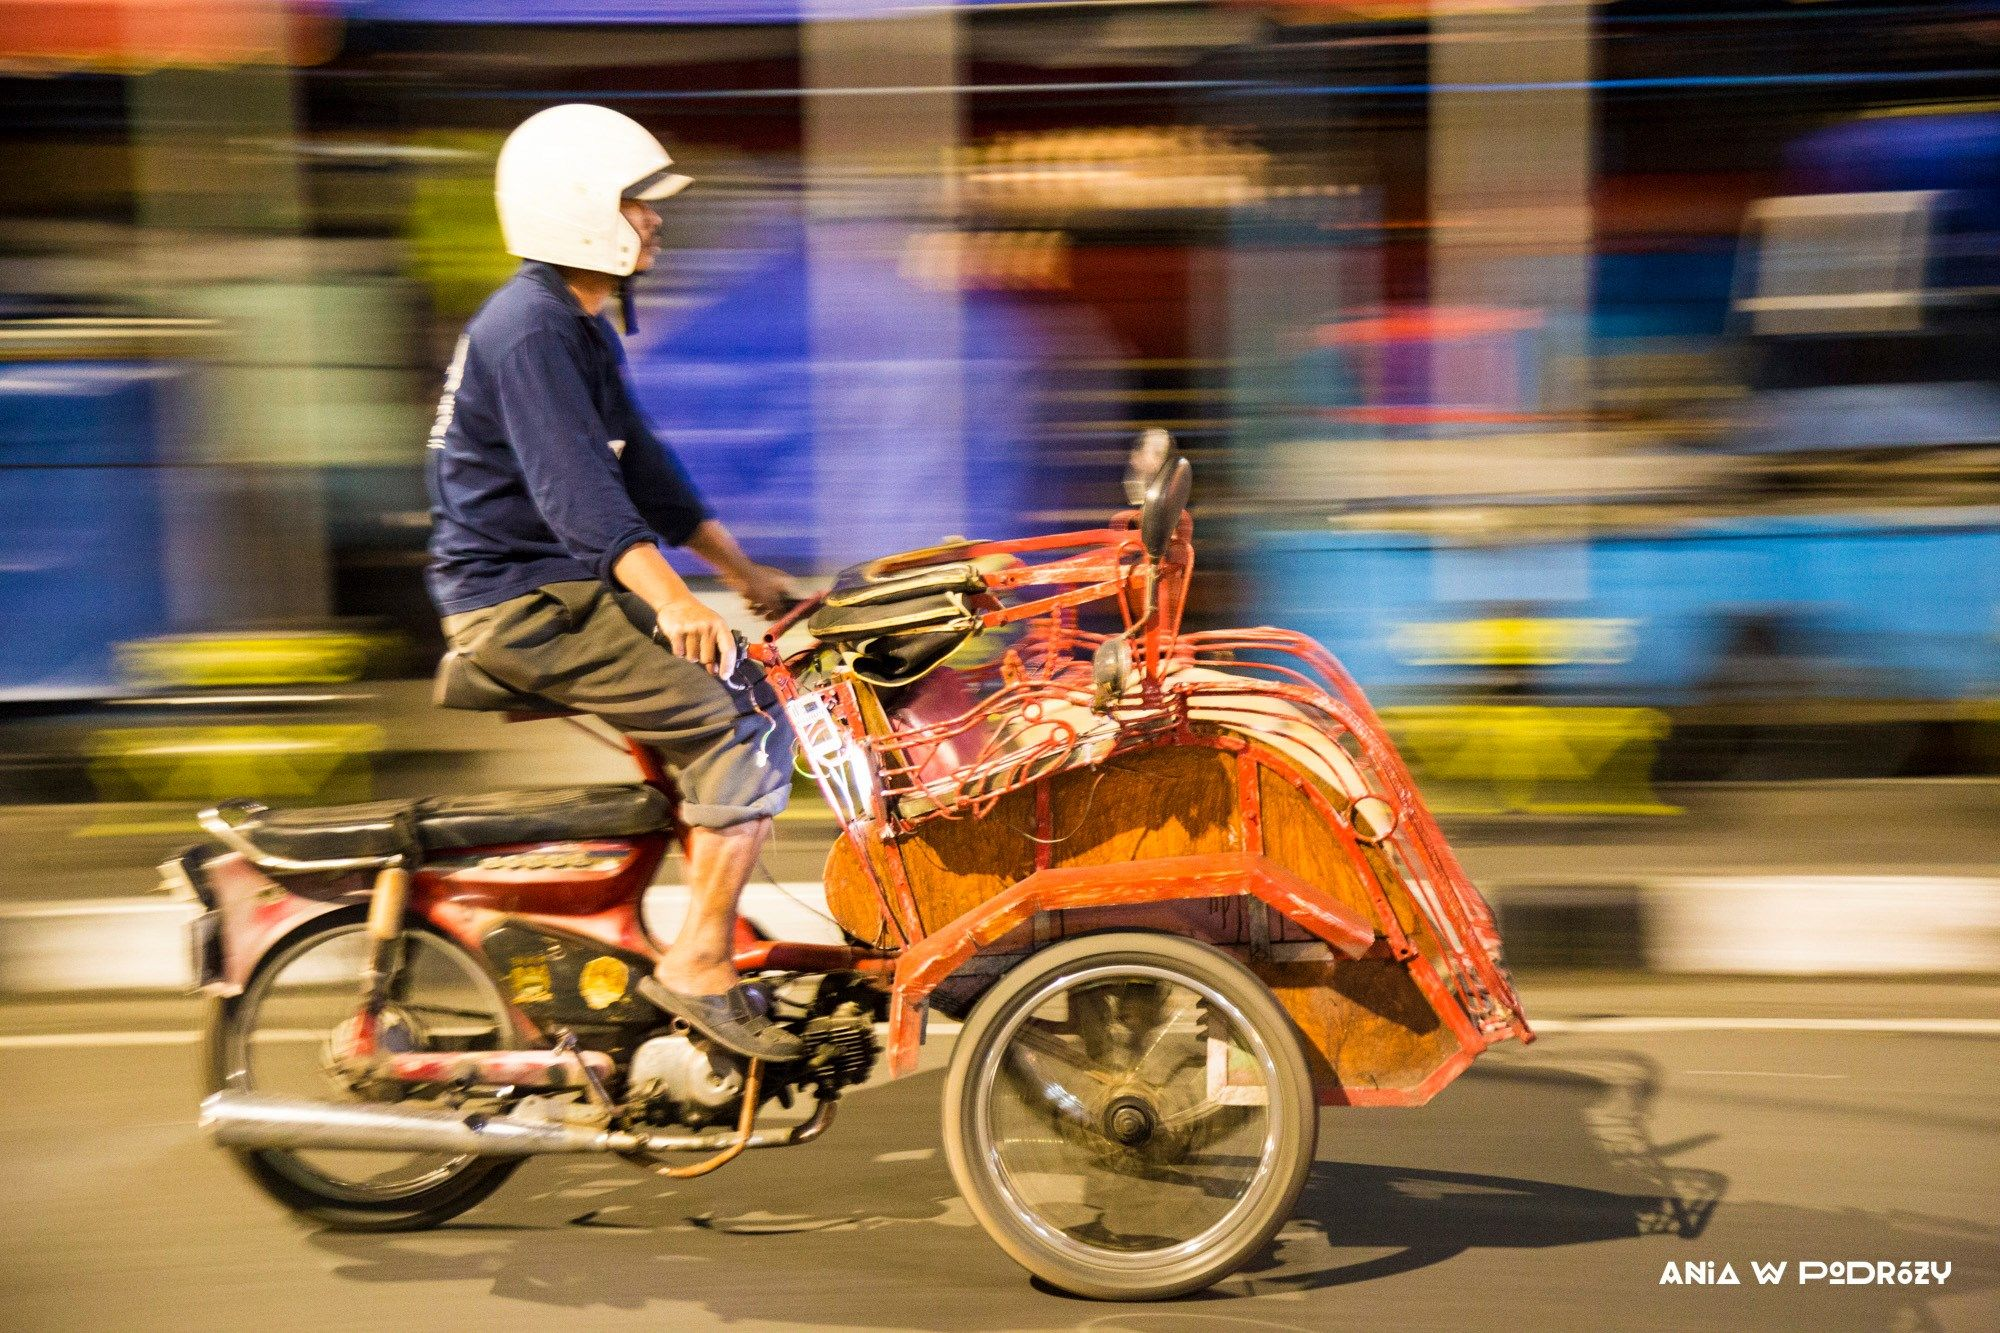 Becak - indonesian local transportation. ANIA W PODRÓŻY travel blog and photography